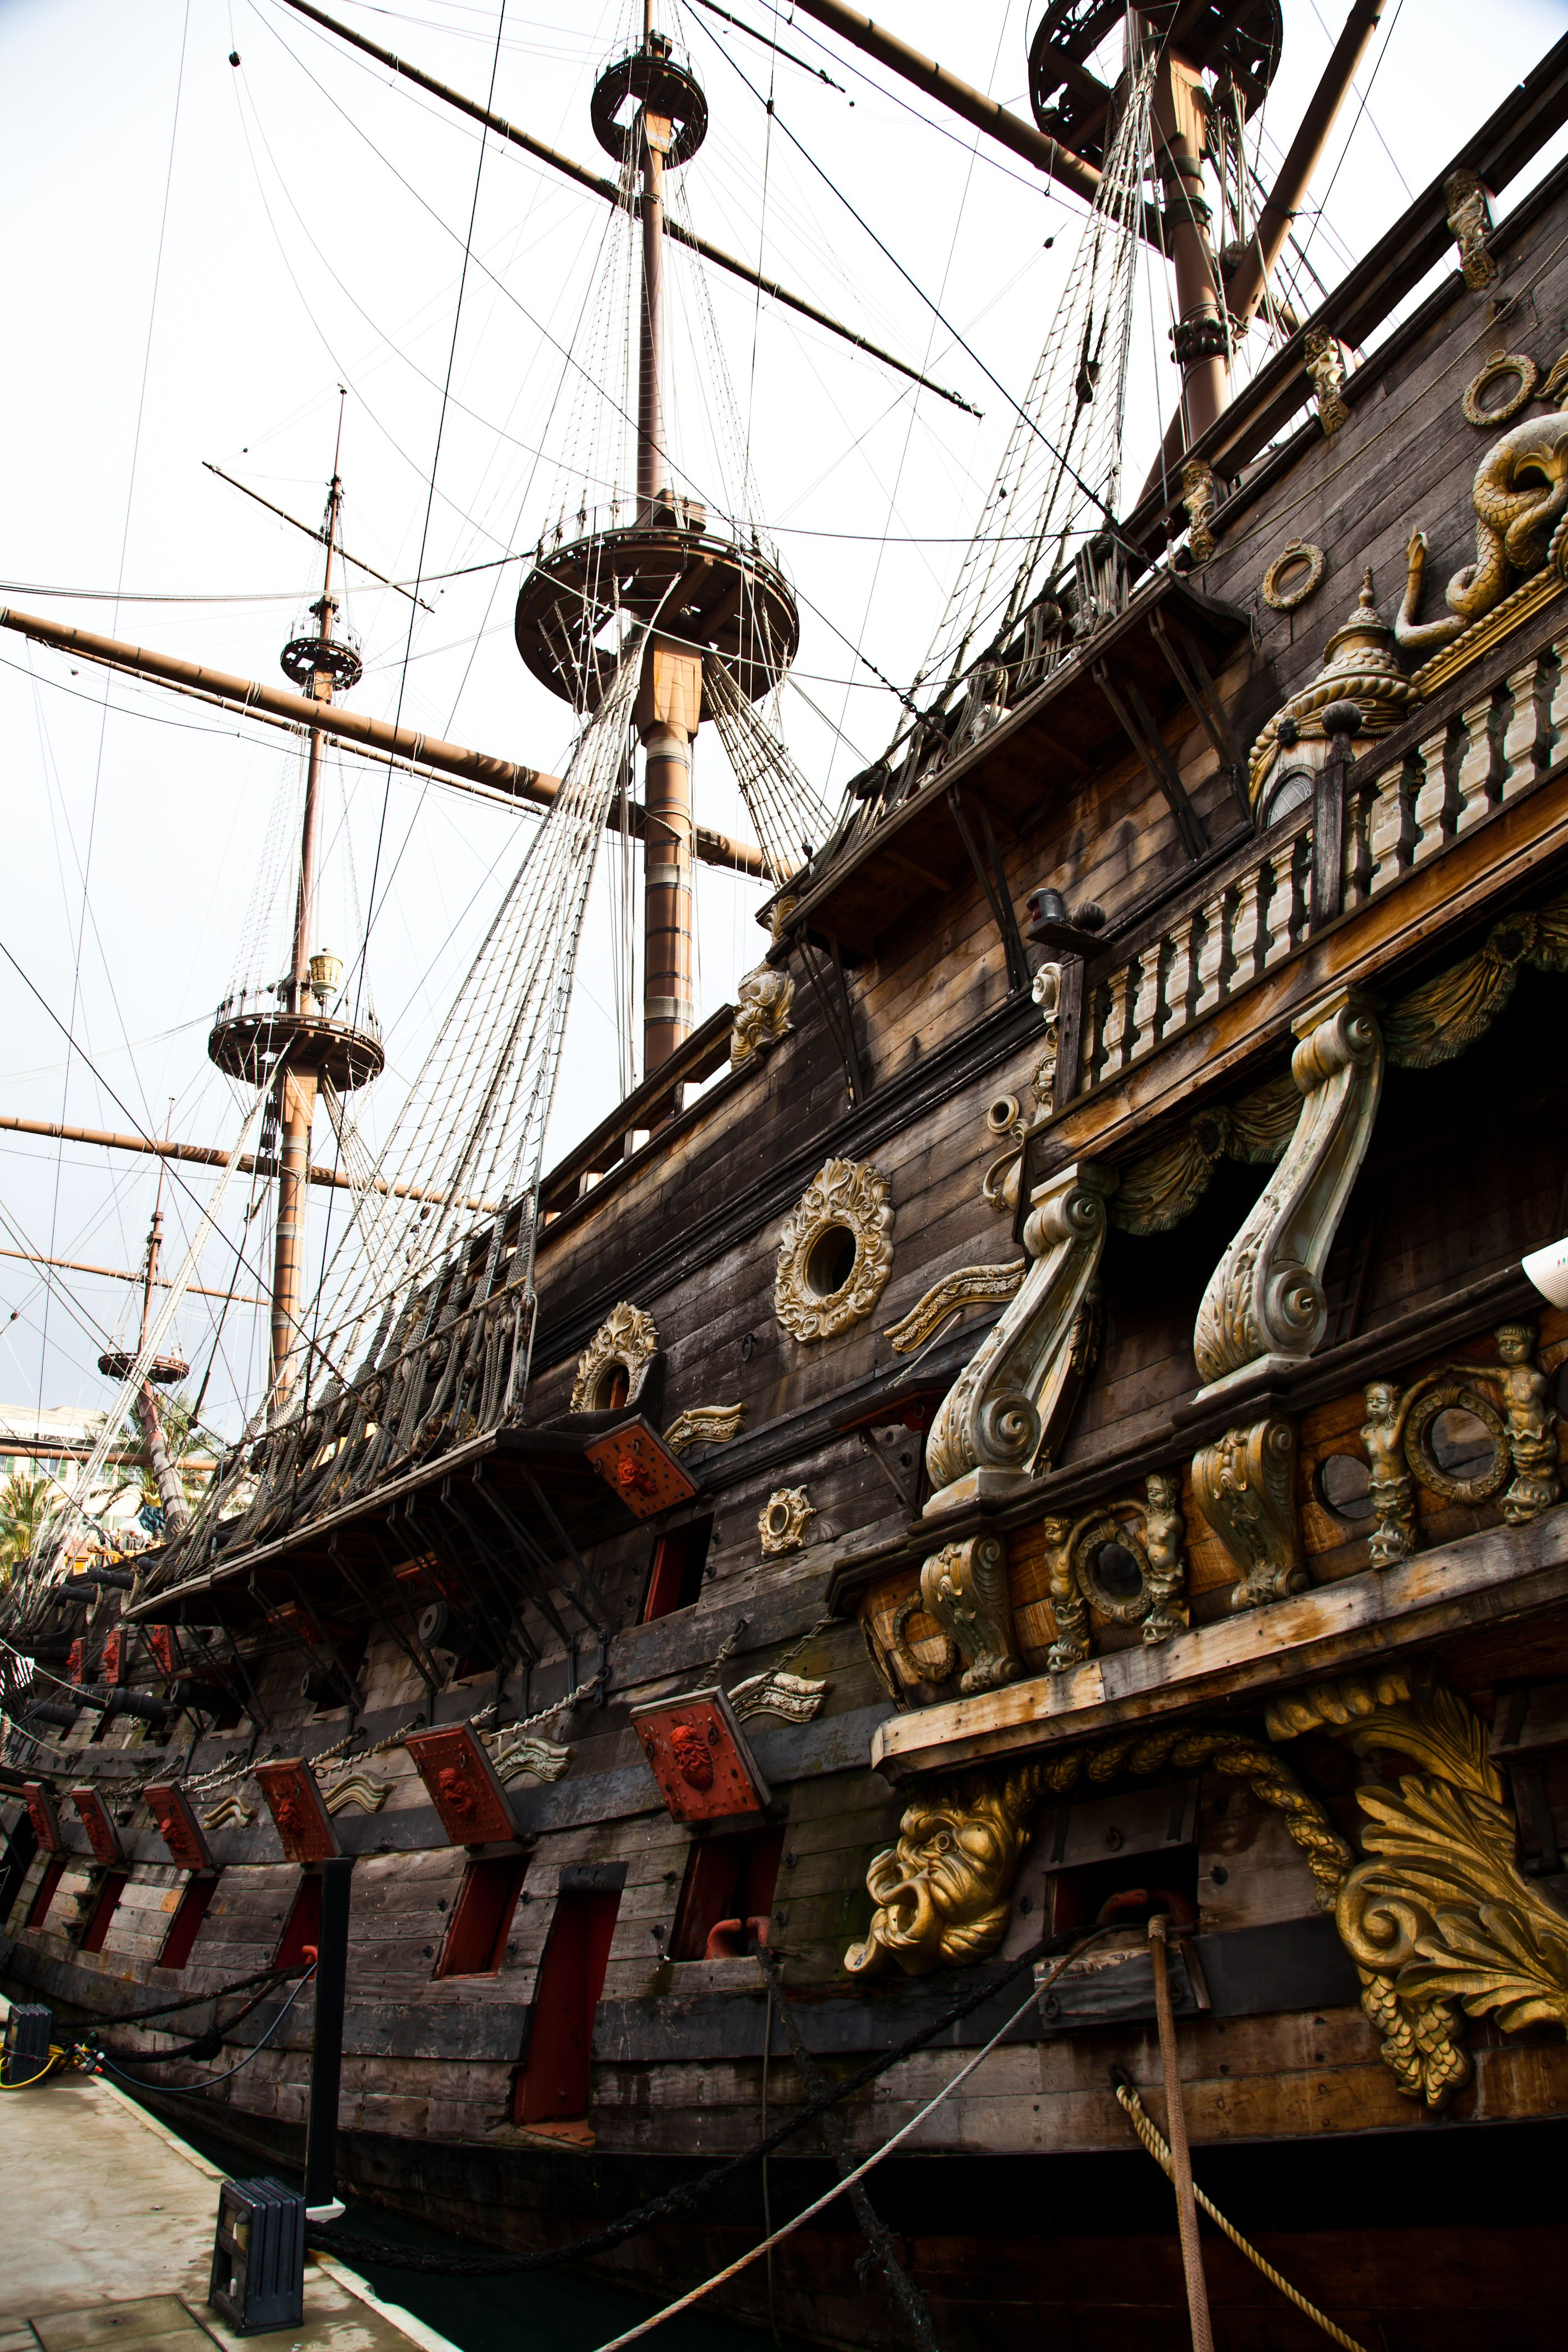 pirate ships - photo #17